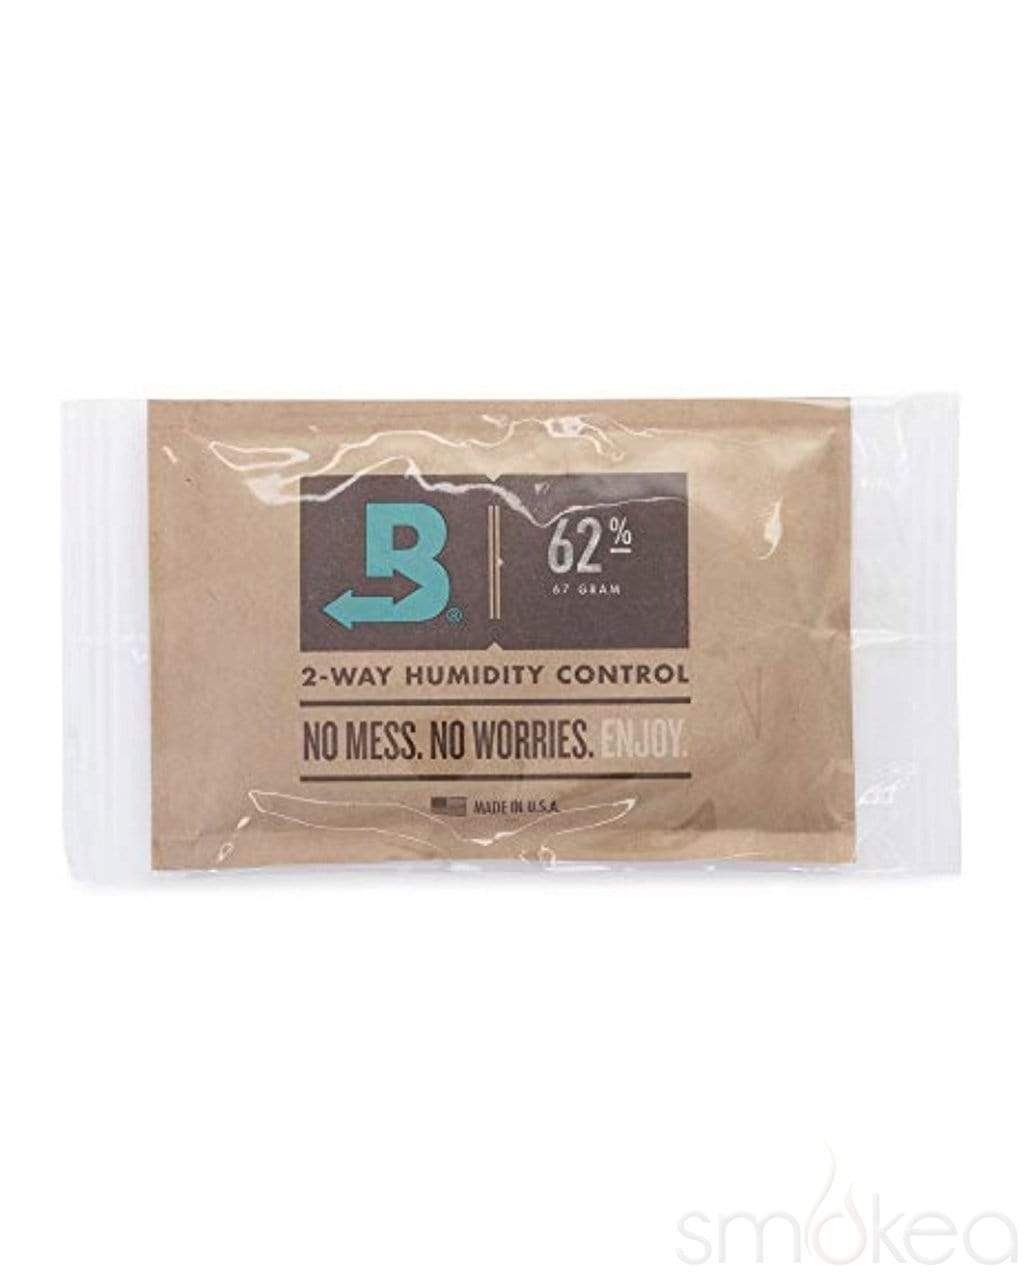 Boveda 67g 2-Way Humidity Control Pack - SMOKEA